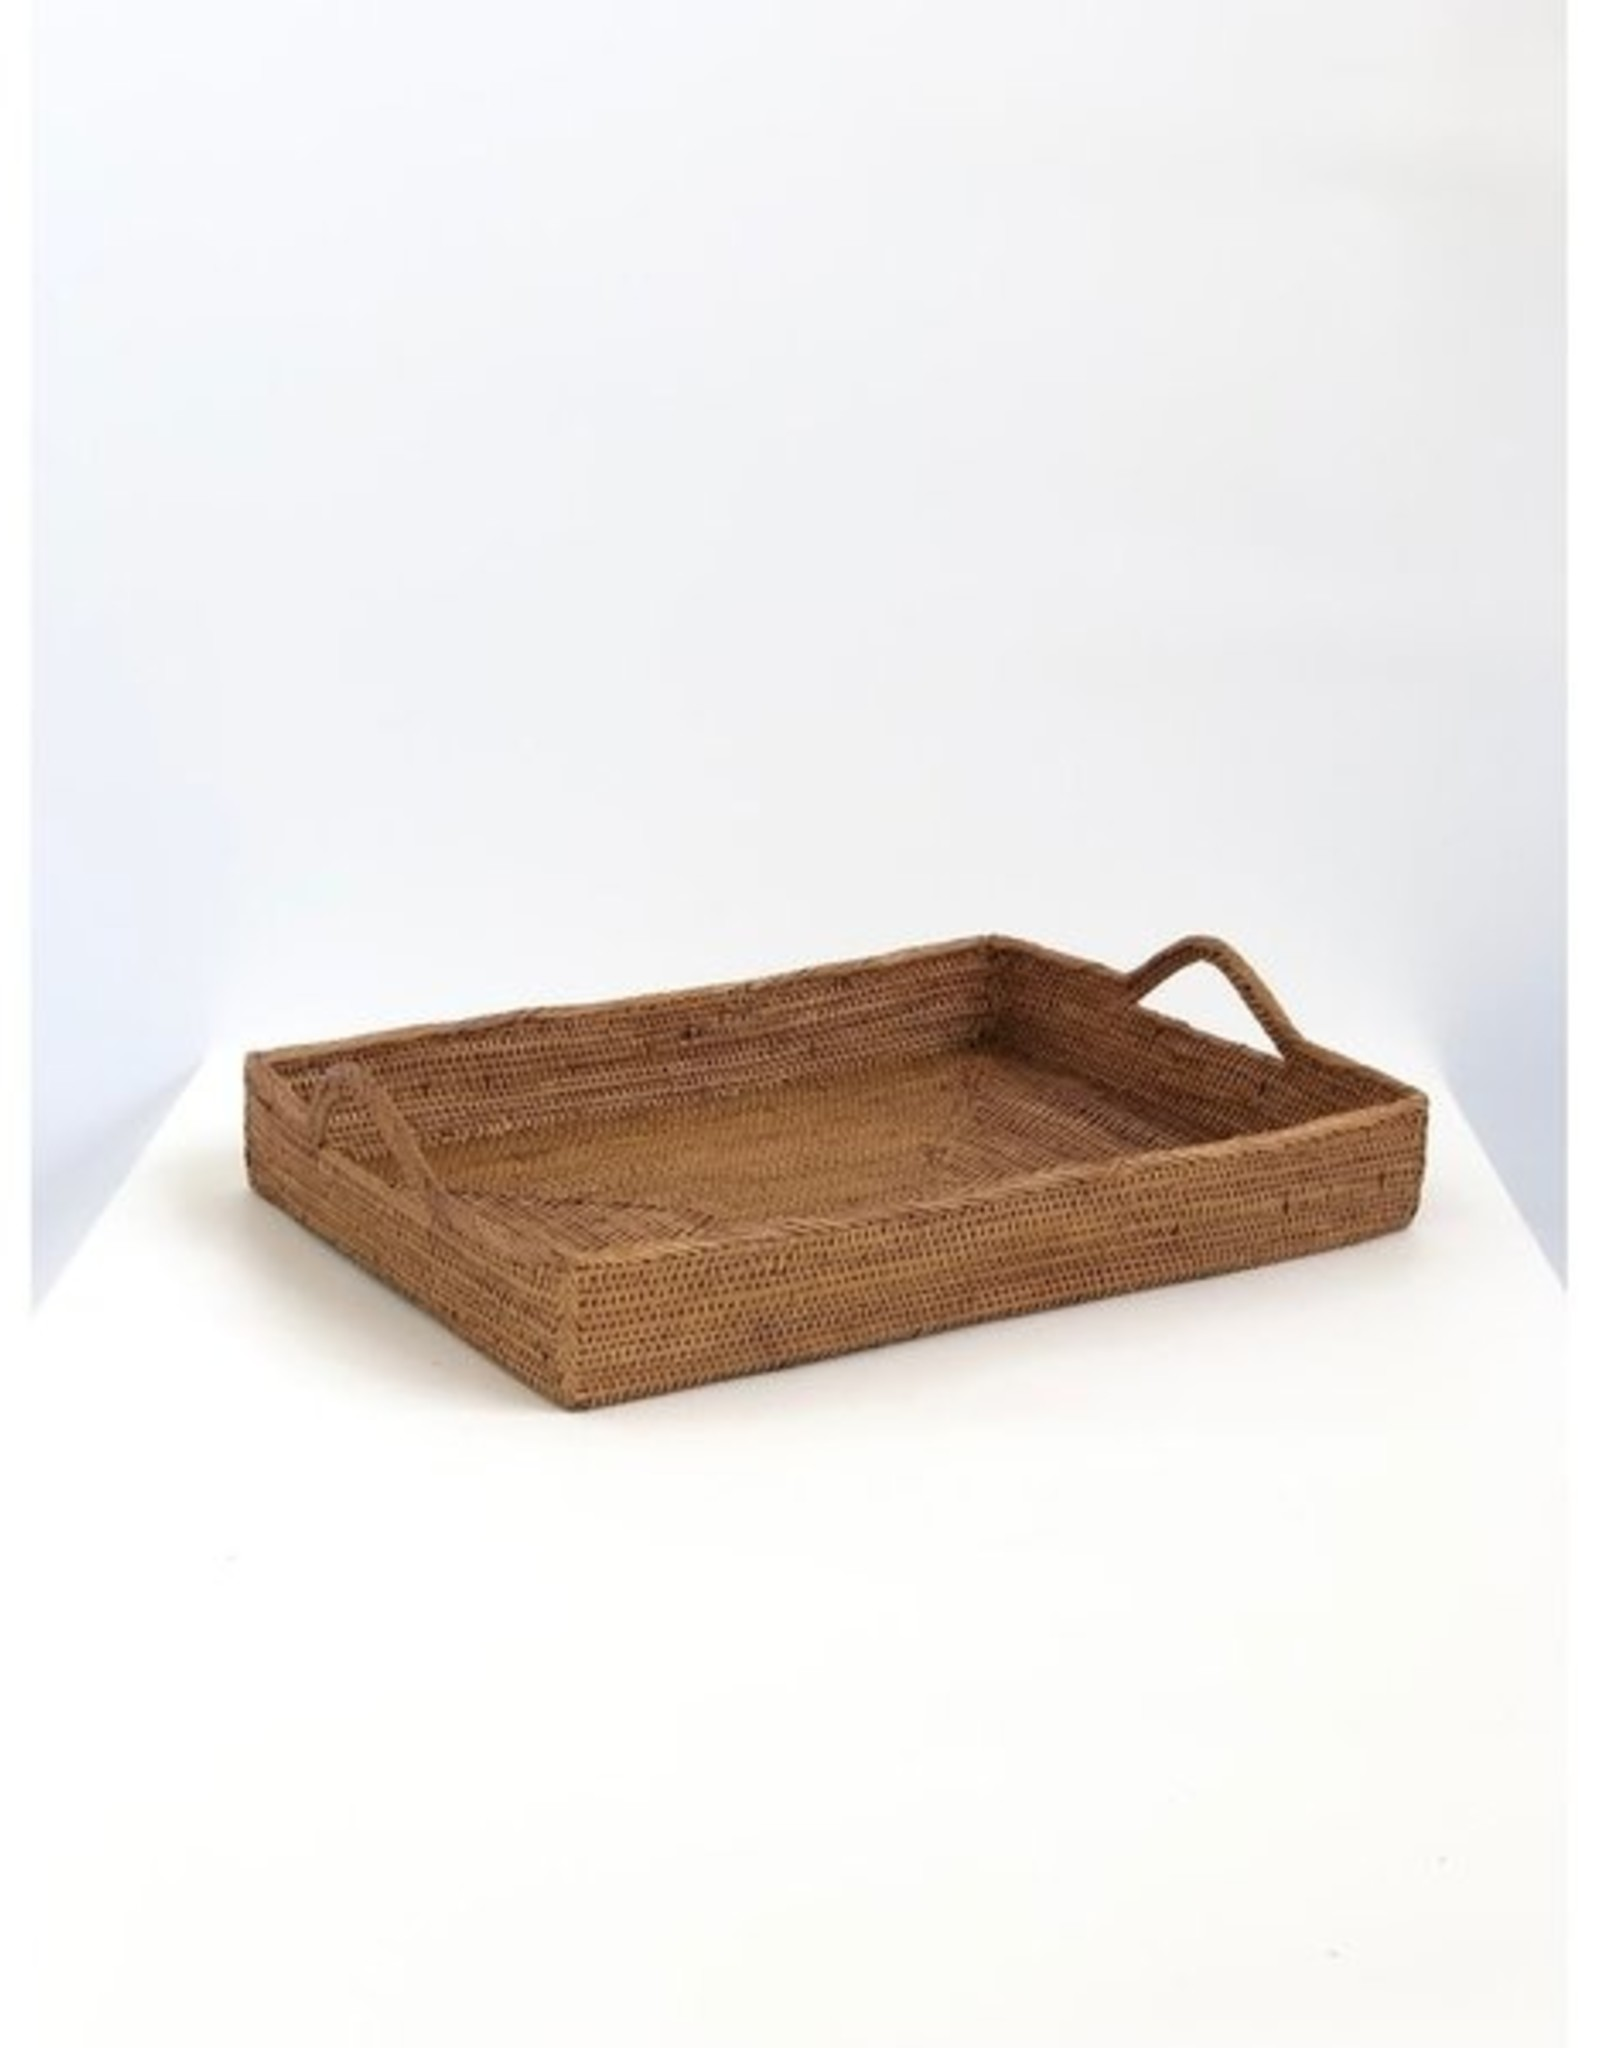 AndYu Ata Grass Serving Tray with Handles